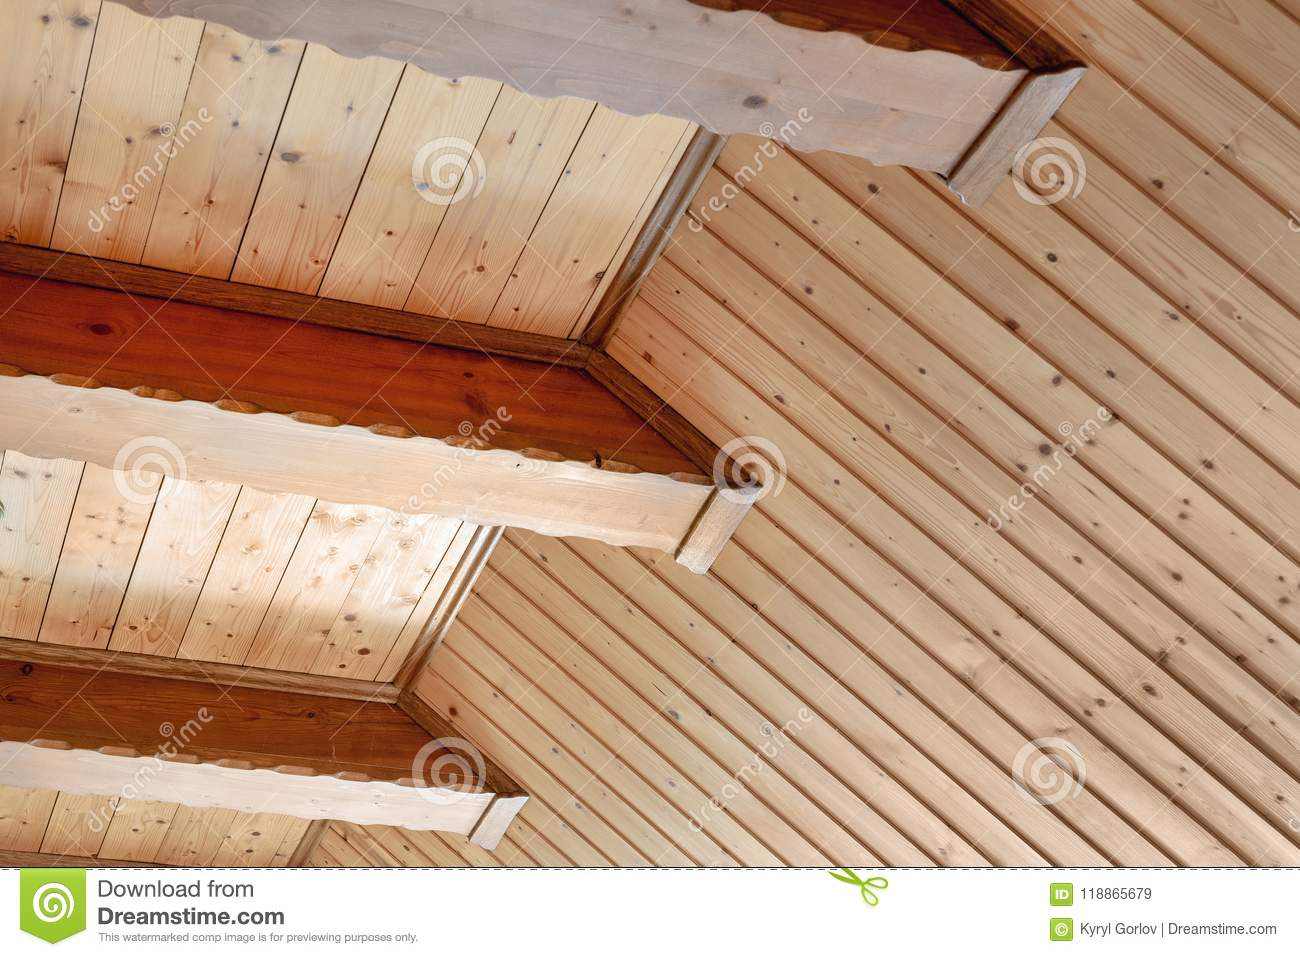 Country Home Ceiling Designs on country home fireplaces, country home furniture, country home floor, country home lights, country home painting, country home foundation, country home balconies, country home bars, country home showers, country home staircases, country home sinks, country home signs, country home bathrooms, country home pillars, country home wood, country home paint, country home photography, country home doors, country home wallpaper, country home gates,